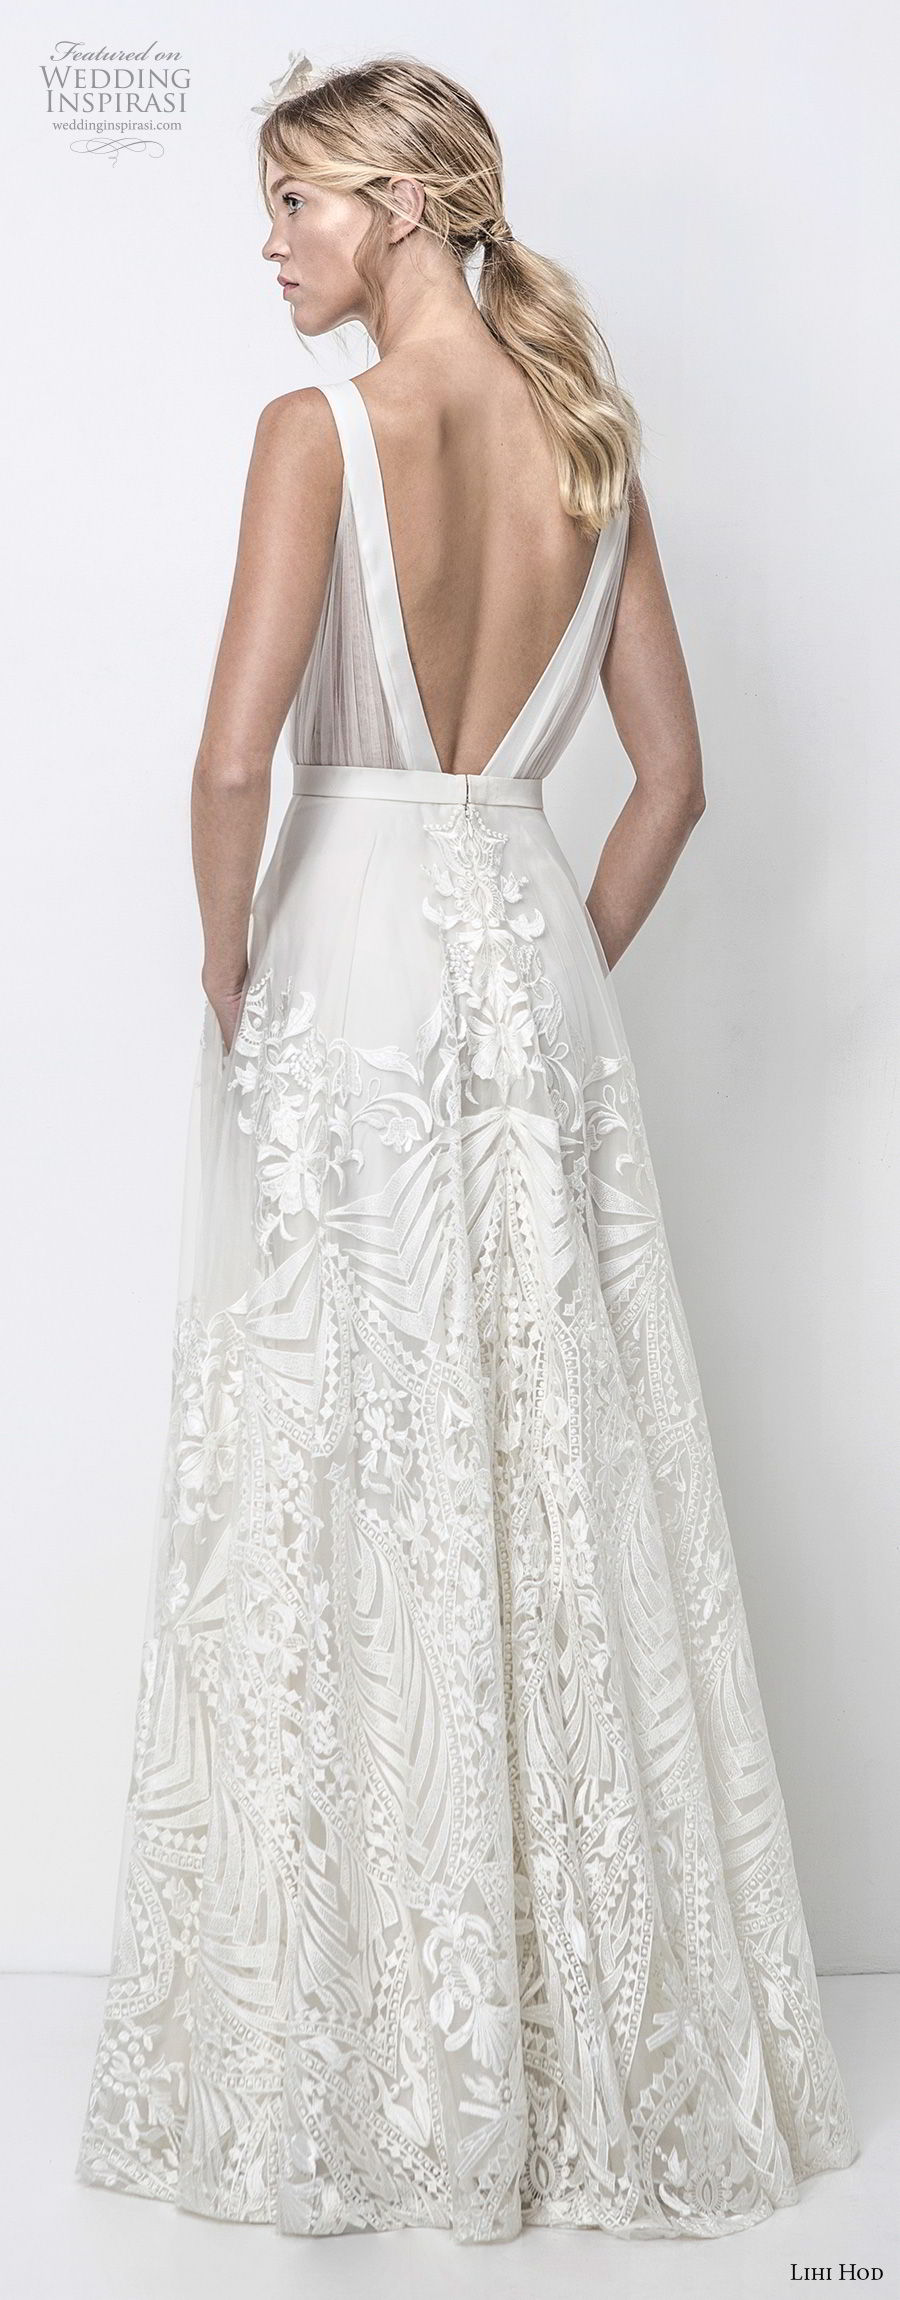 lihi hod 2018 wedding dresses a whiter shade of pale